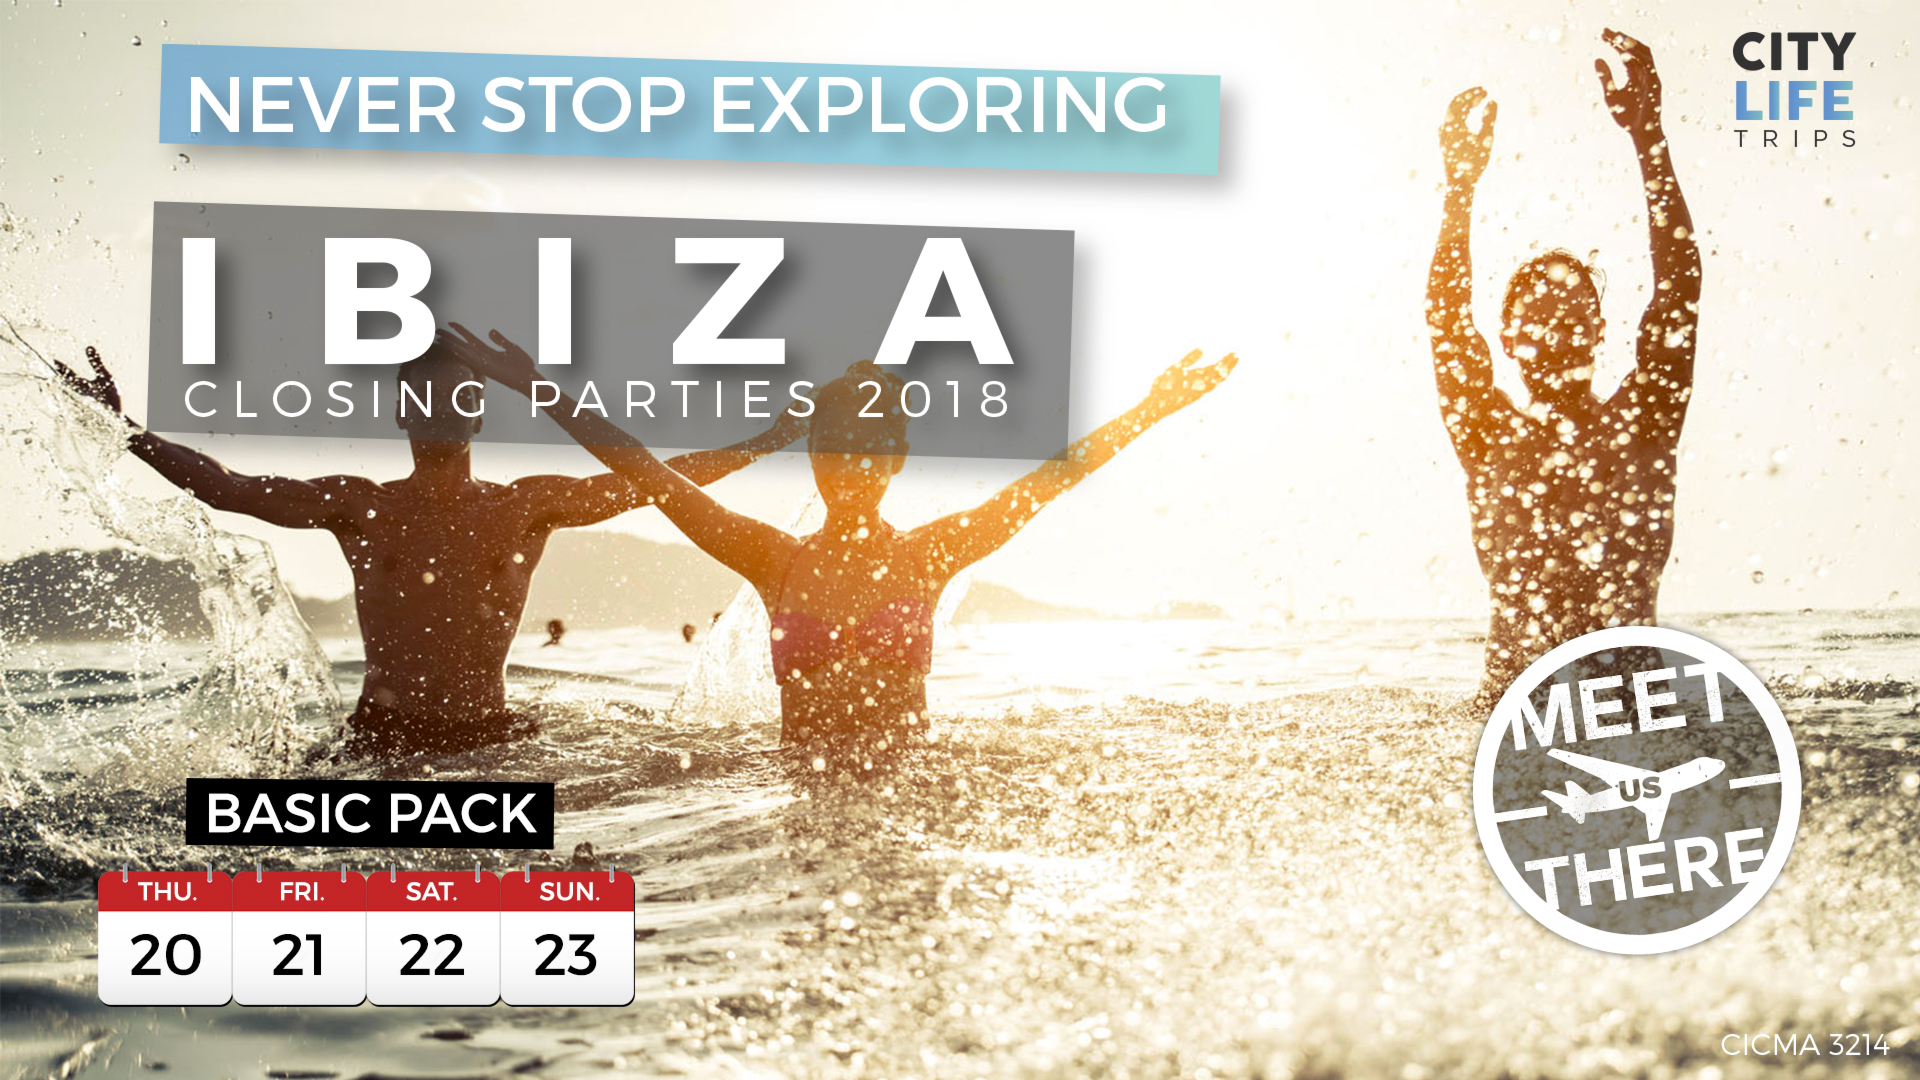 Ibiza - Closing Parties 2018 (Meet us There)